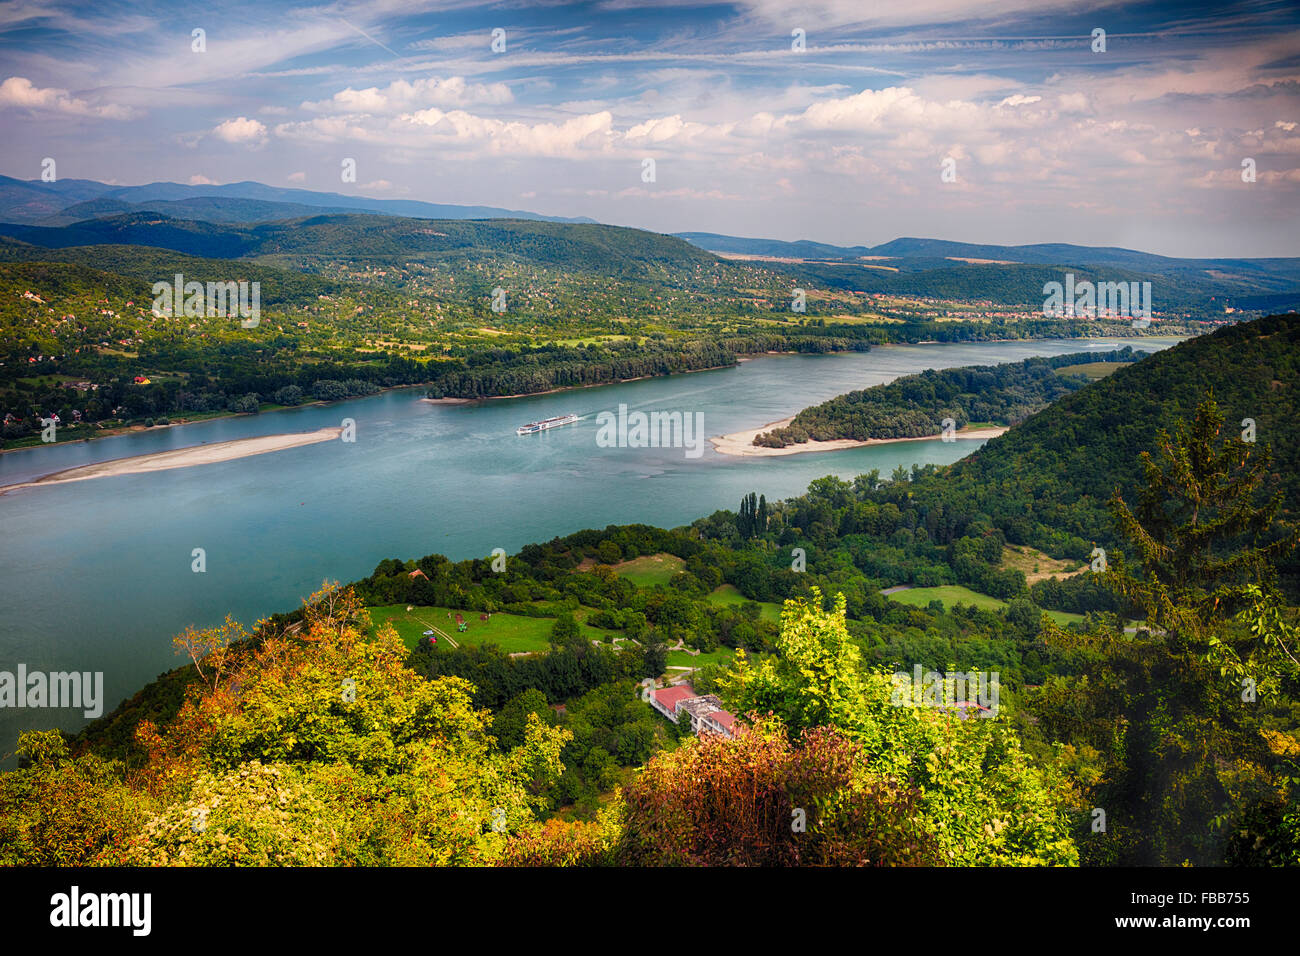 High Angle View of the Danube River with Islands and a Cruise Ship, Visegrad, Pest County, Hungary - Stock Image